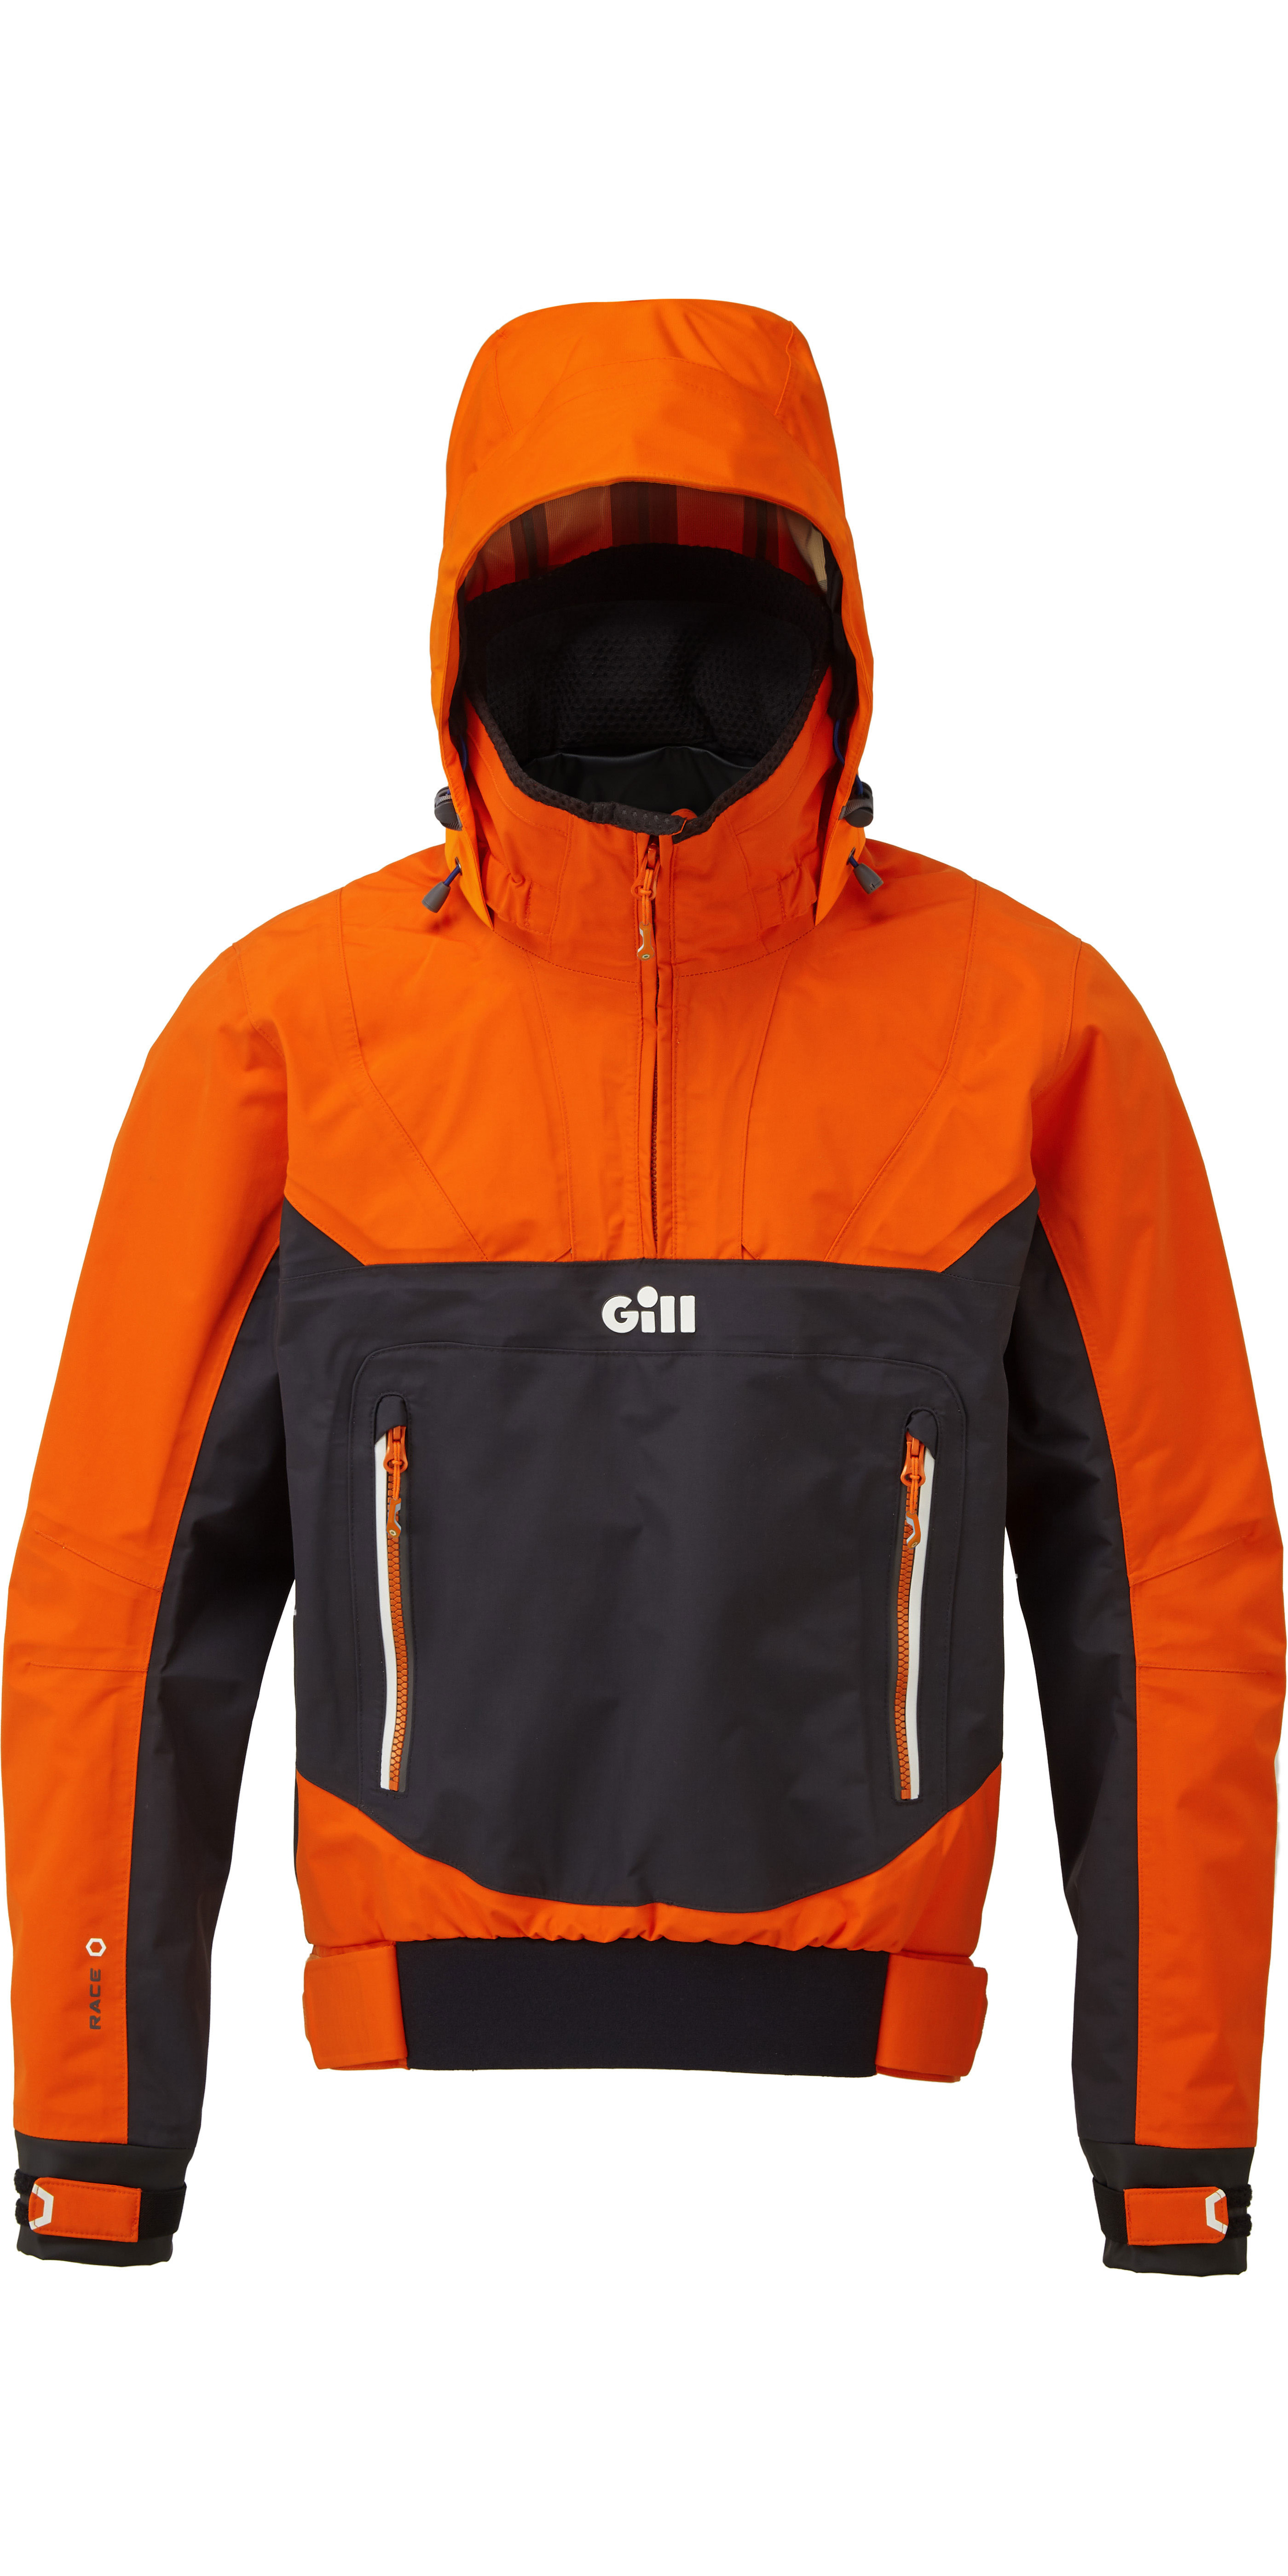 2019 Gill Mens Rennen Fusion Smock Rs24 & Salopettes RS25 Tango / Schwarz